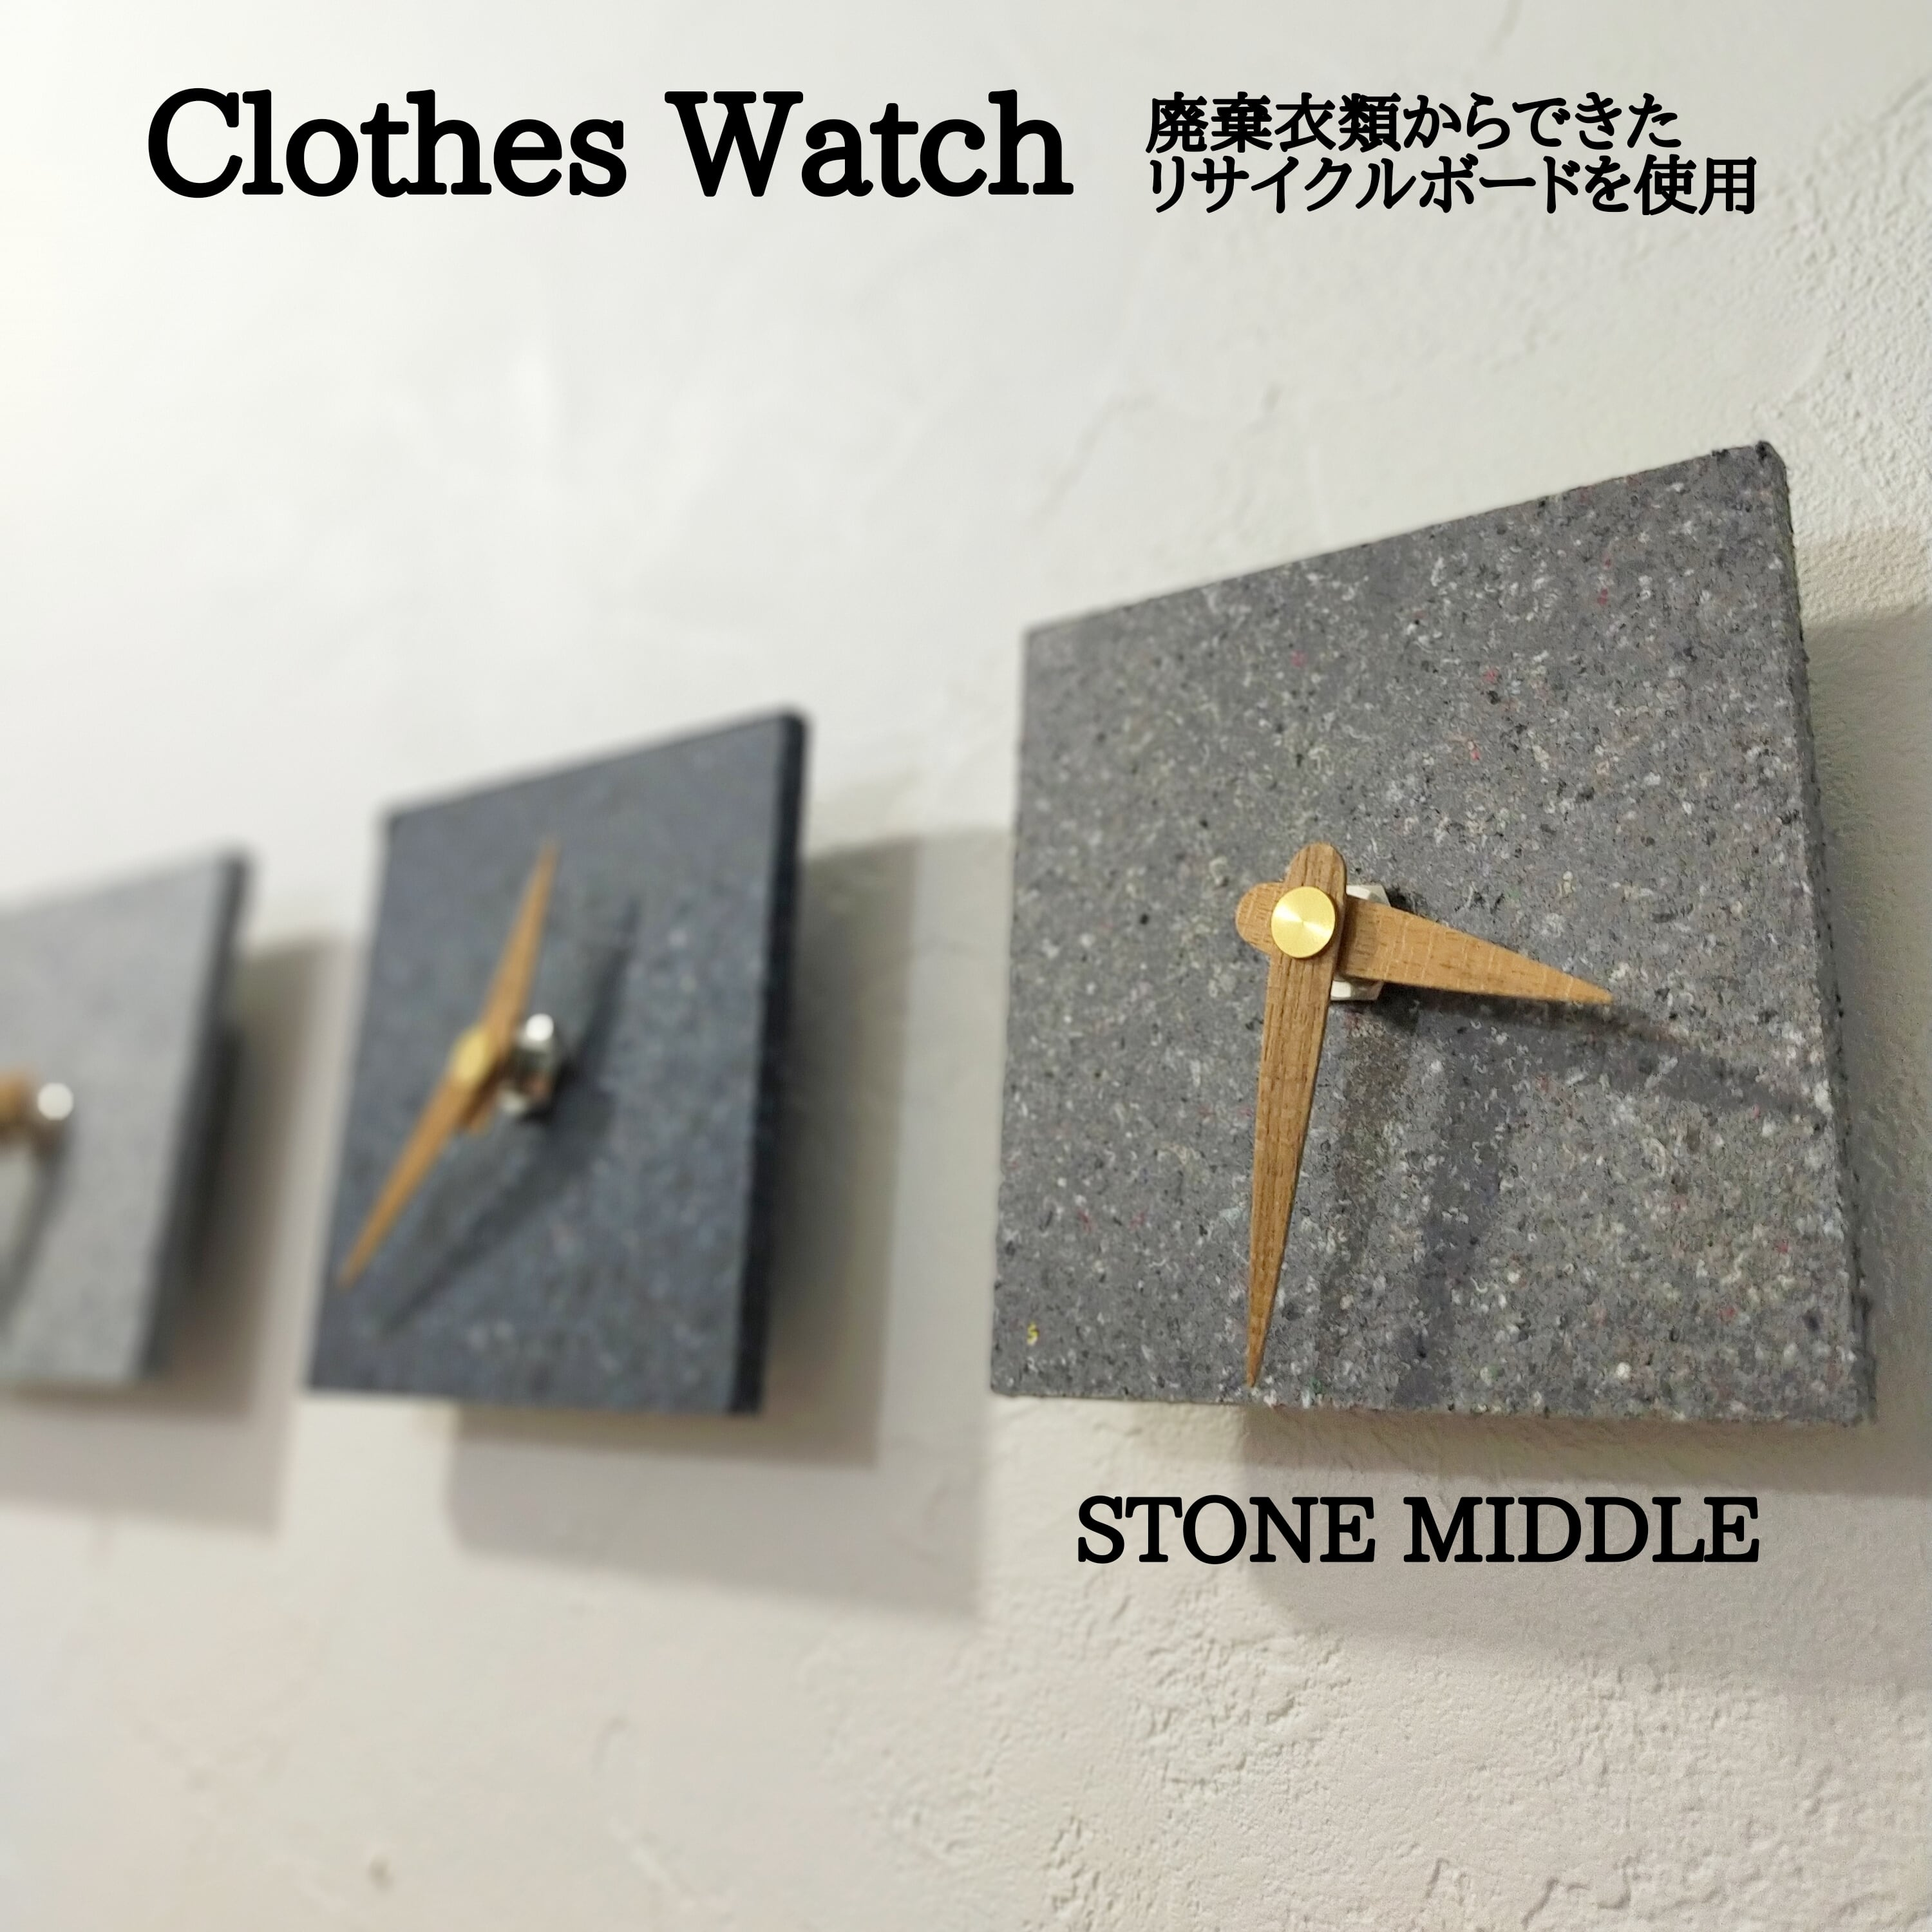 Clothes Watch(STONE MIDDLE)